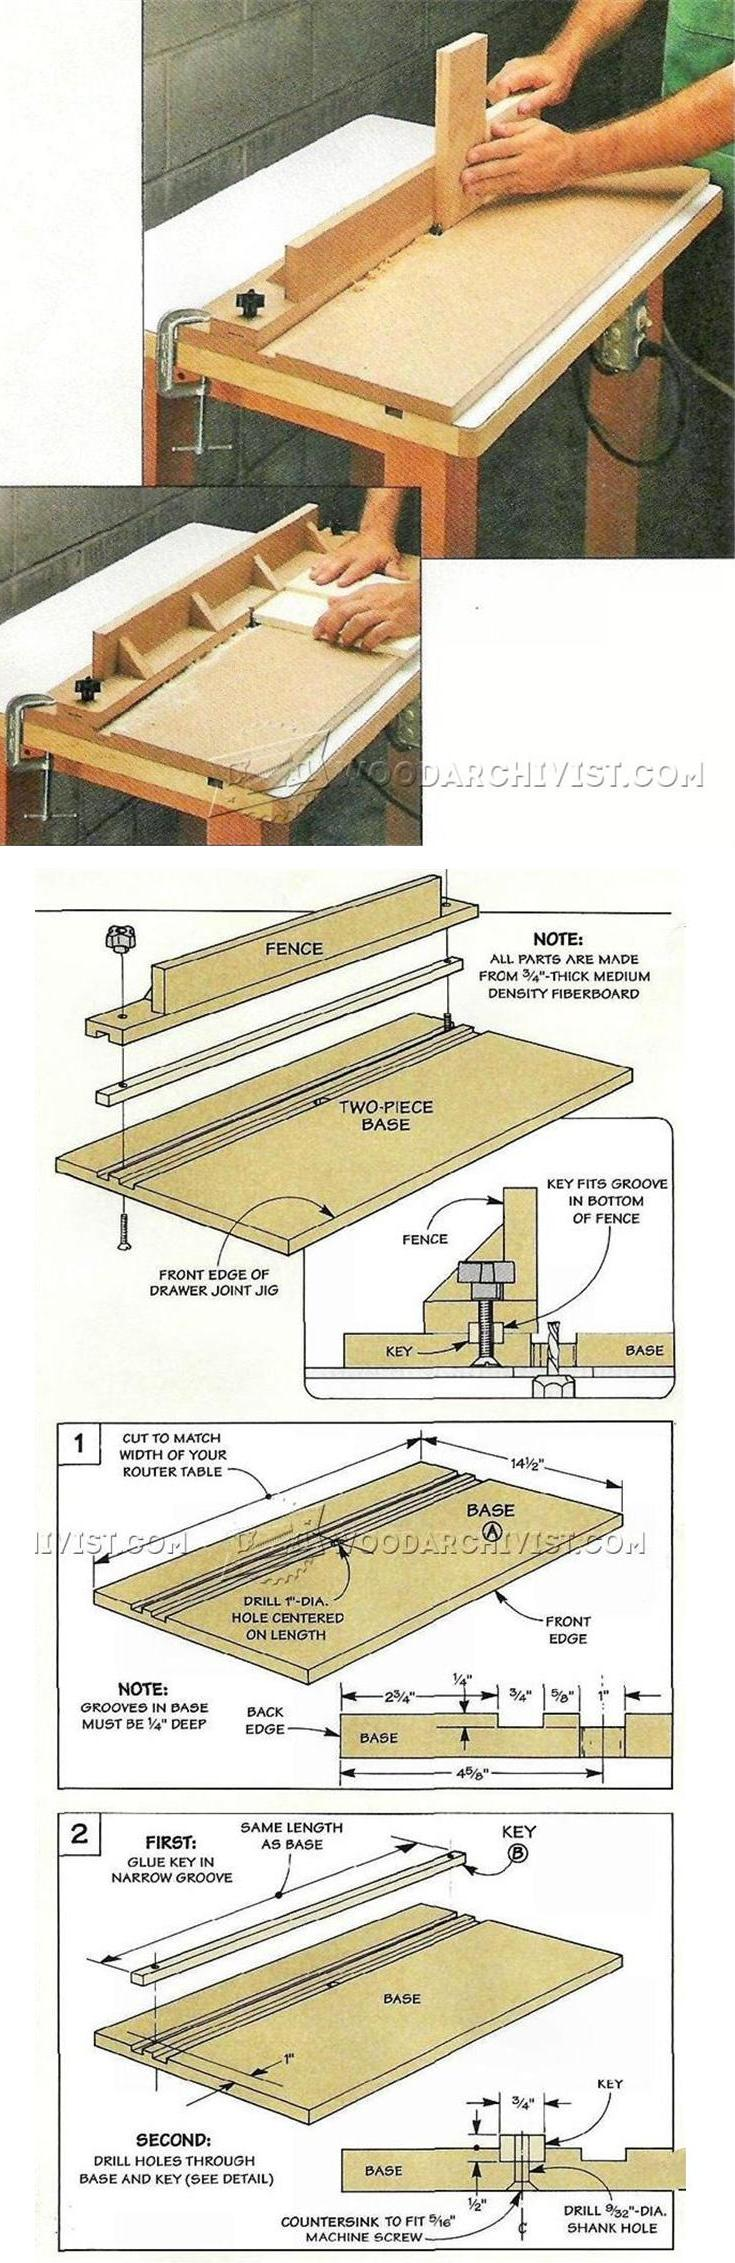 Drawer Joint Jig - Drawer Construction and Techniques | WoodArchivist.com